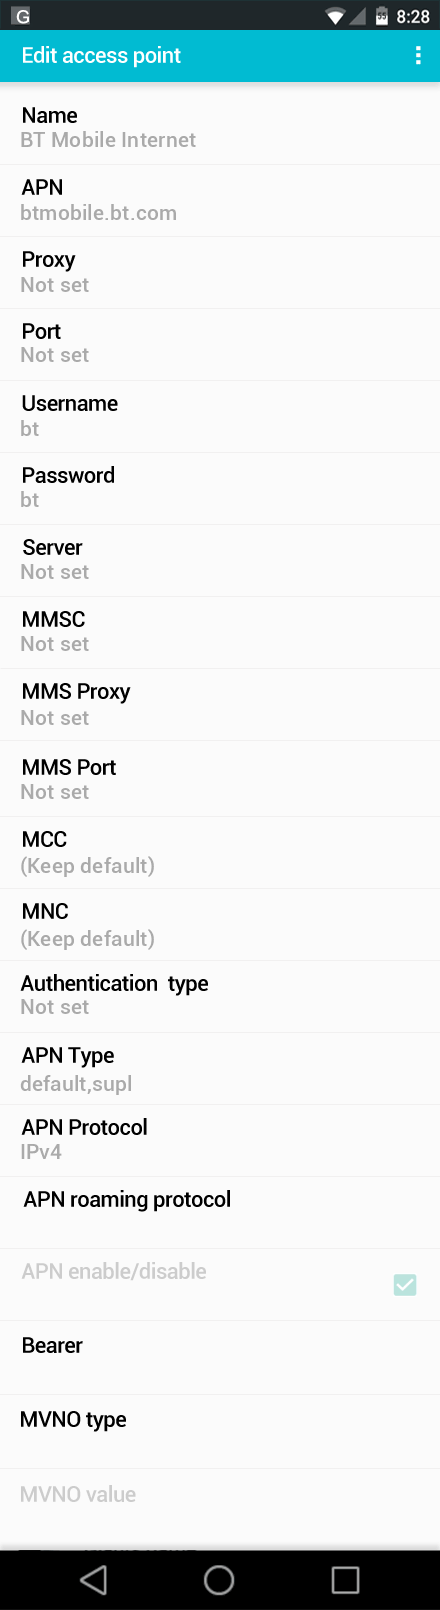 BT Mobile Internet APN settings for Android screenshot